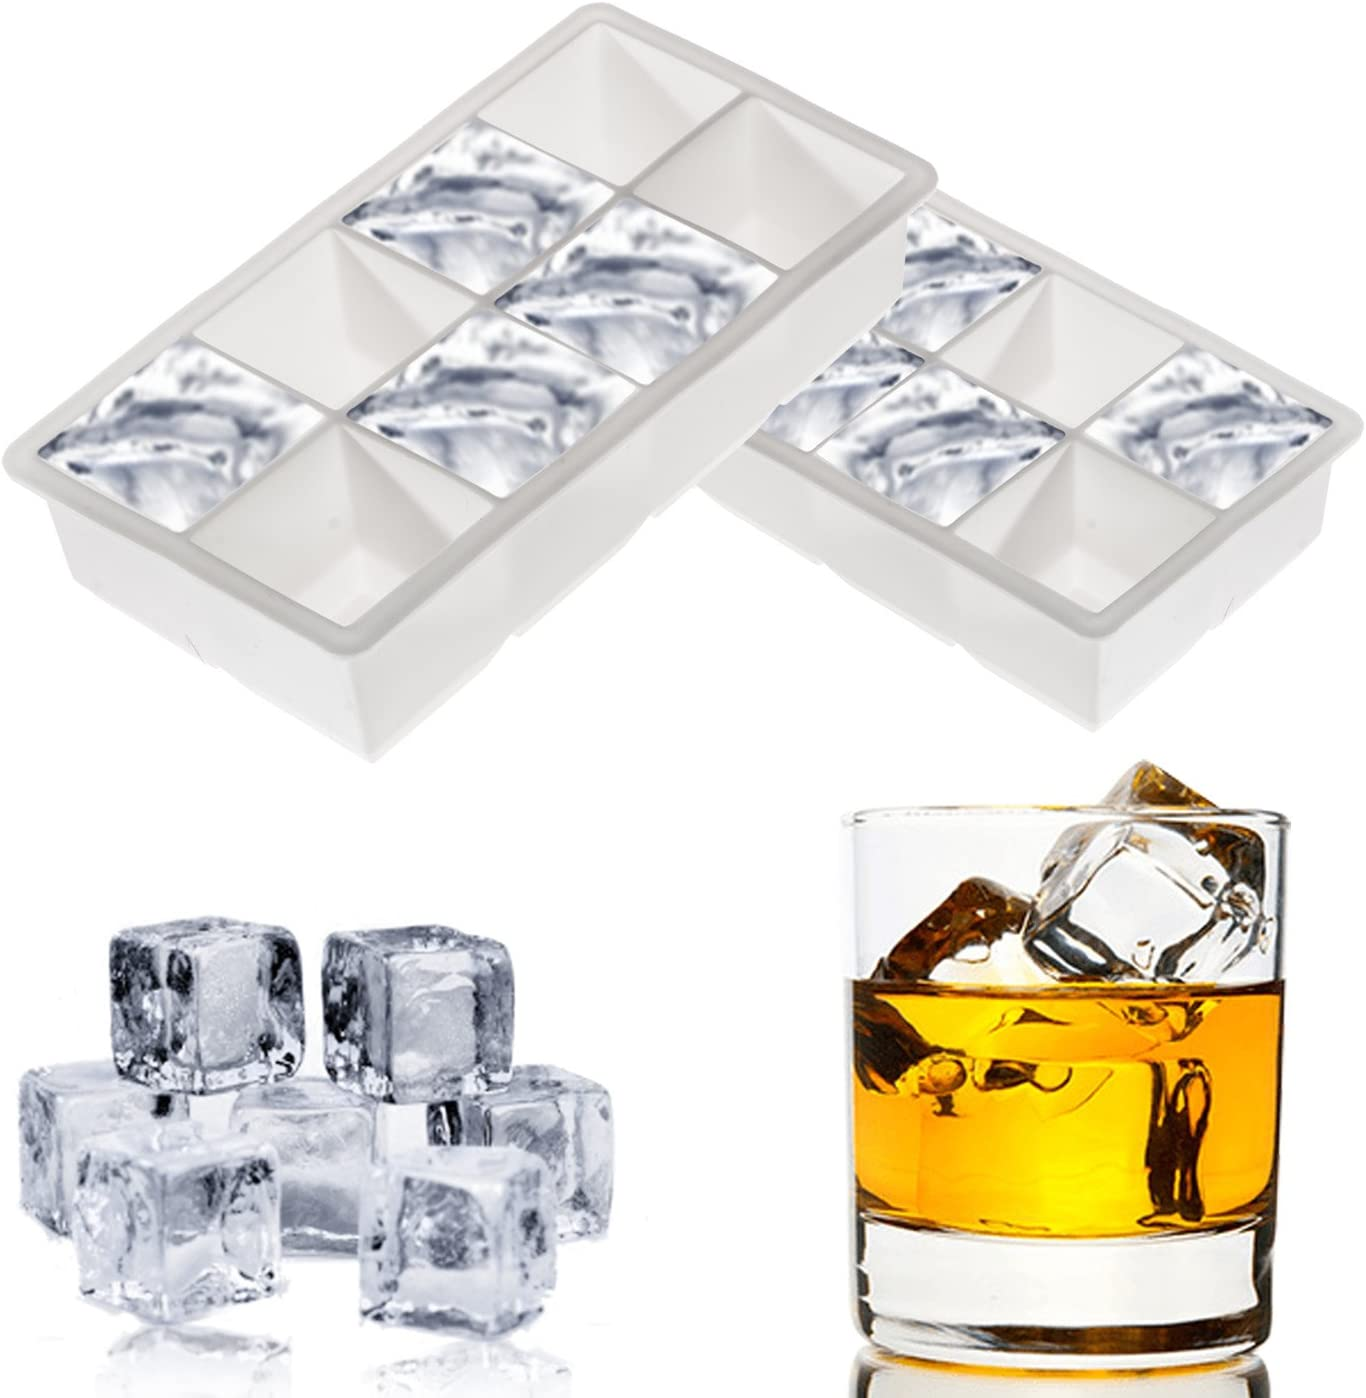 Cozy Home Silicone Ice Cube Tray Mold with 8 Large Square Molds, White (Set of 2)